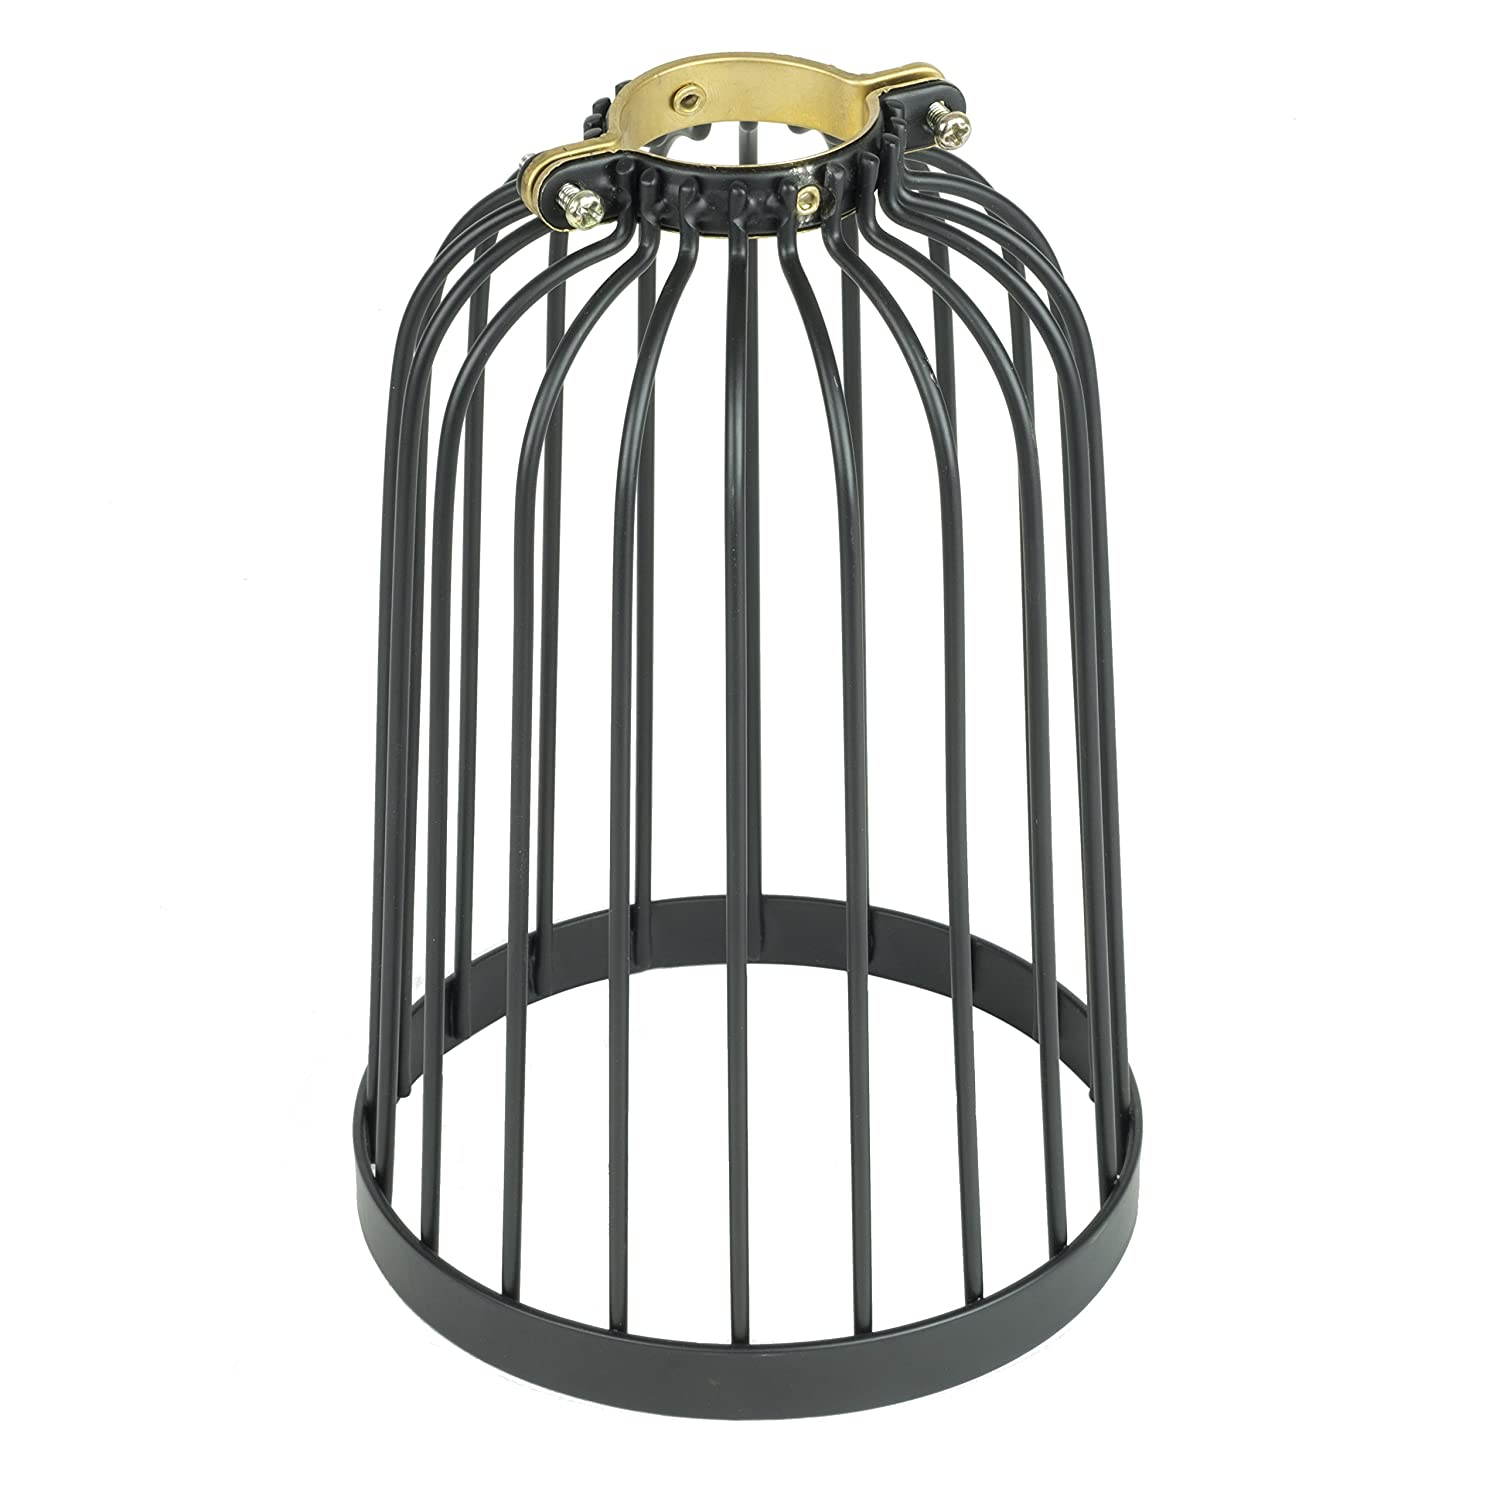 Hanging Lamp Design: Industrial Vintage Bird Cage Design Style Hanging Pendant